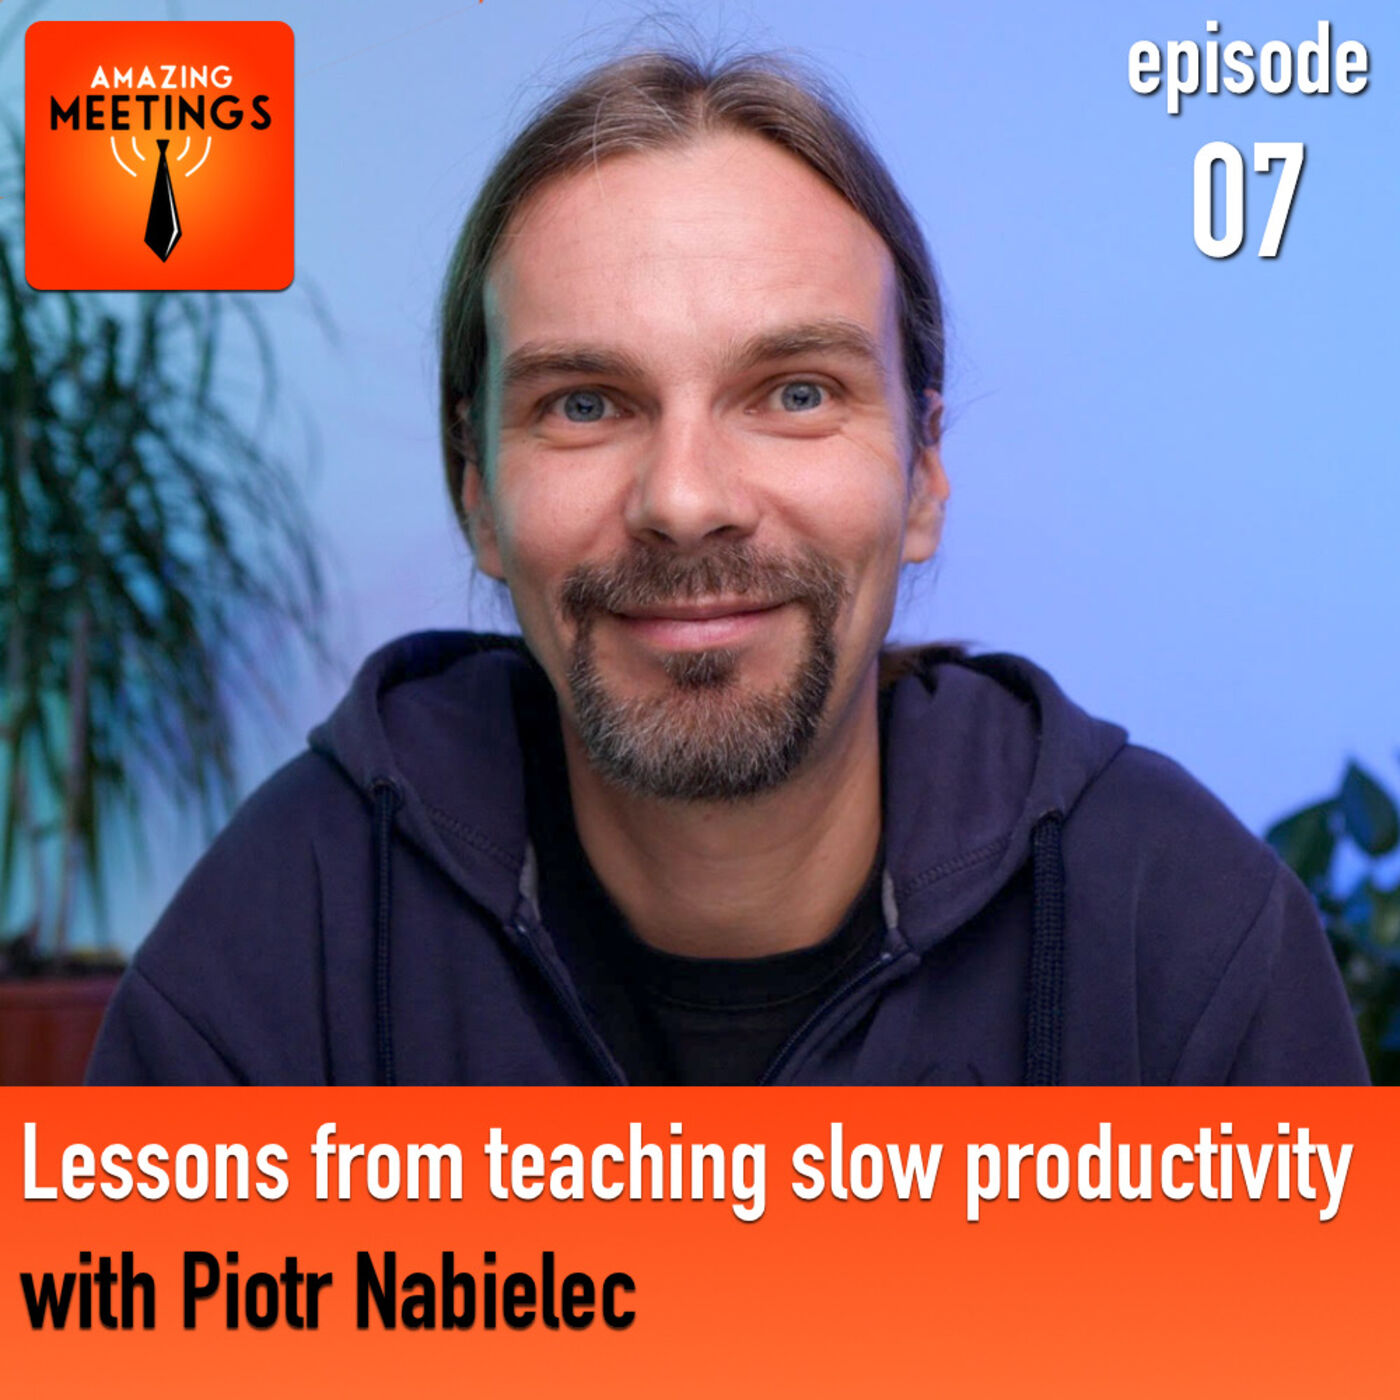 Lessons from teaching slow productivity with Piotr Nabielec